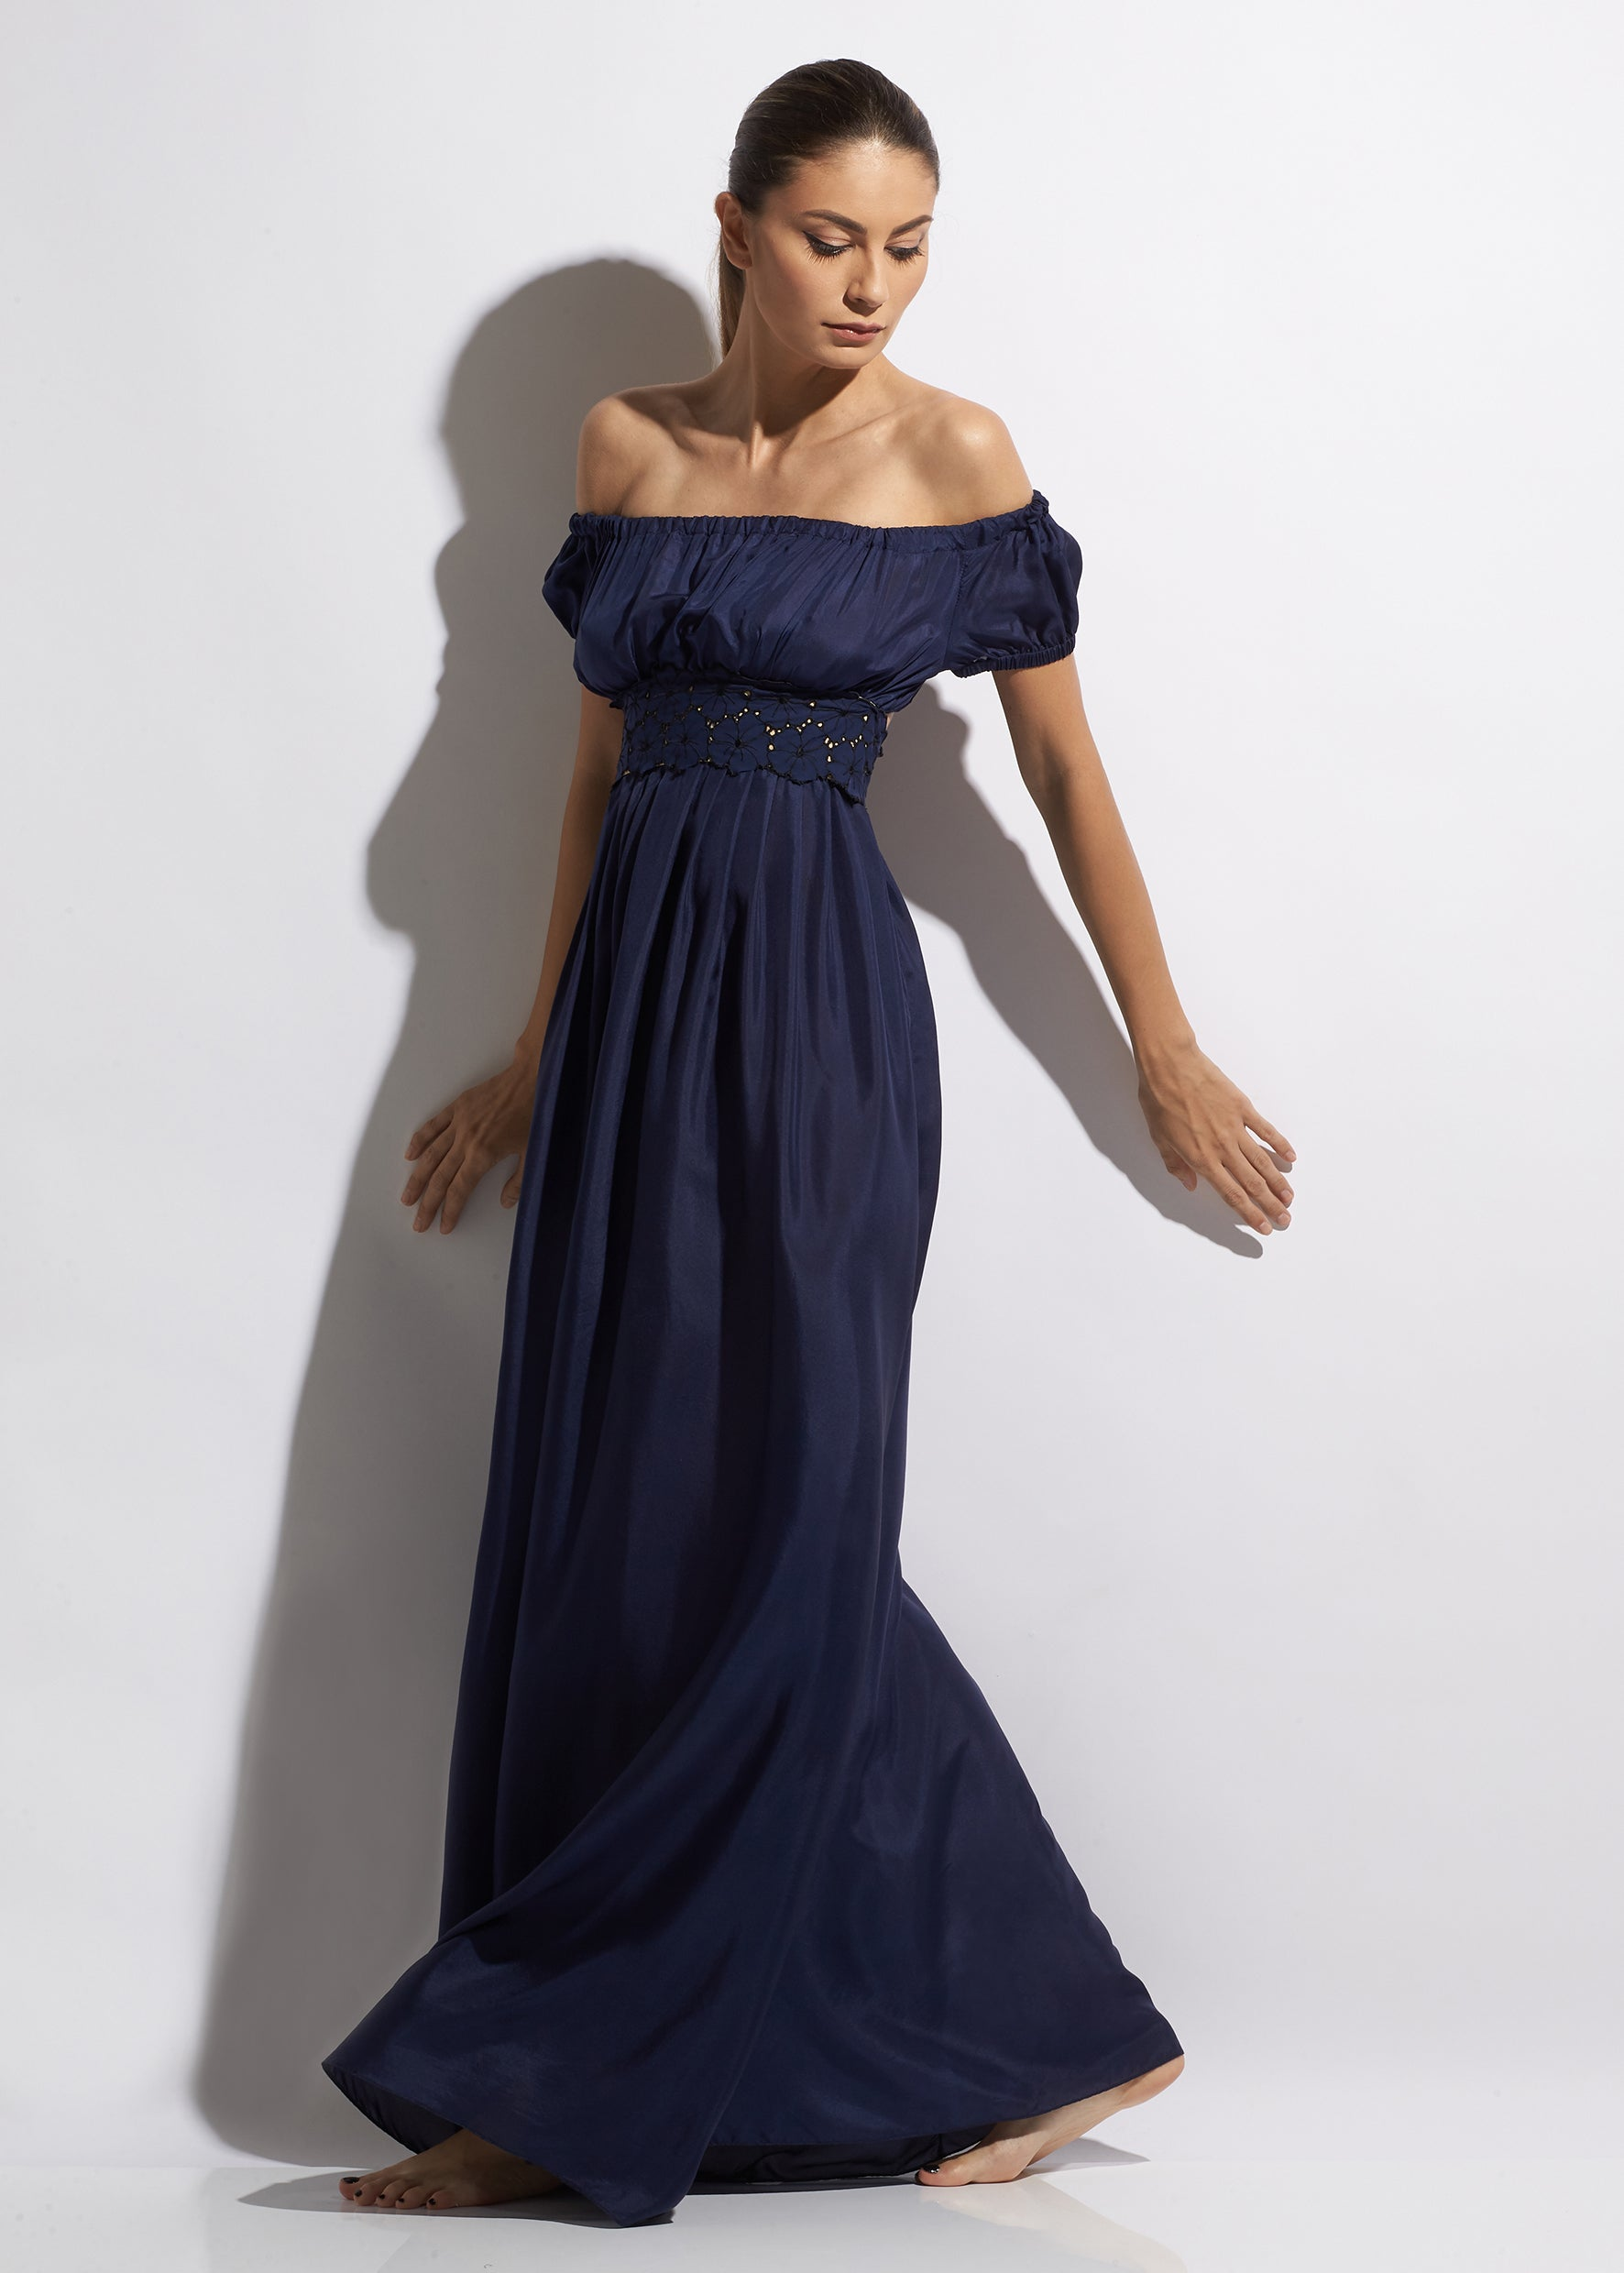 Malibu Sunshine Silk Off Shoulder Long Dress Navy